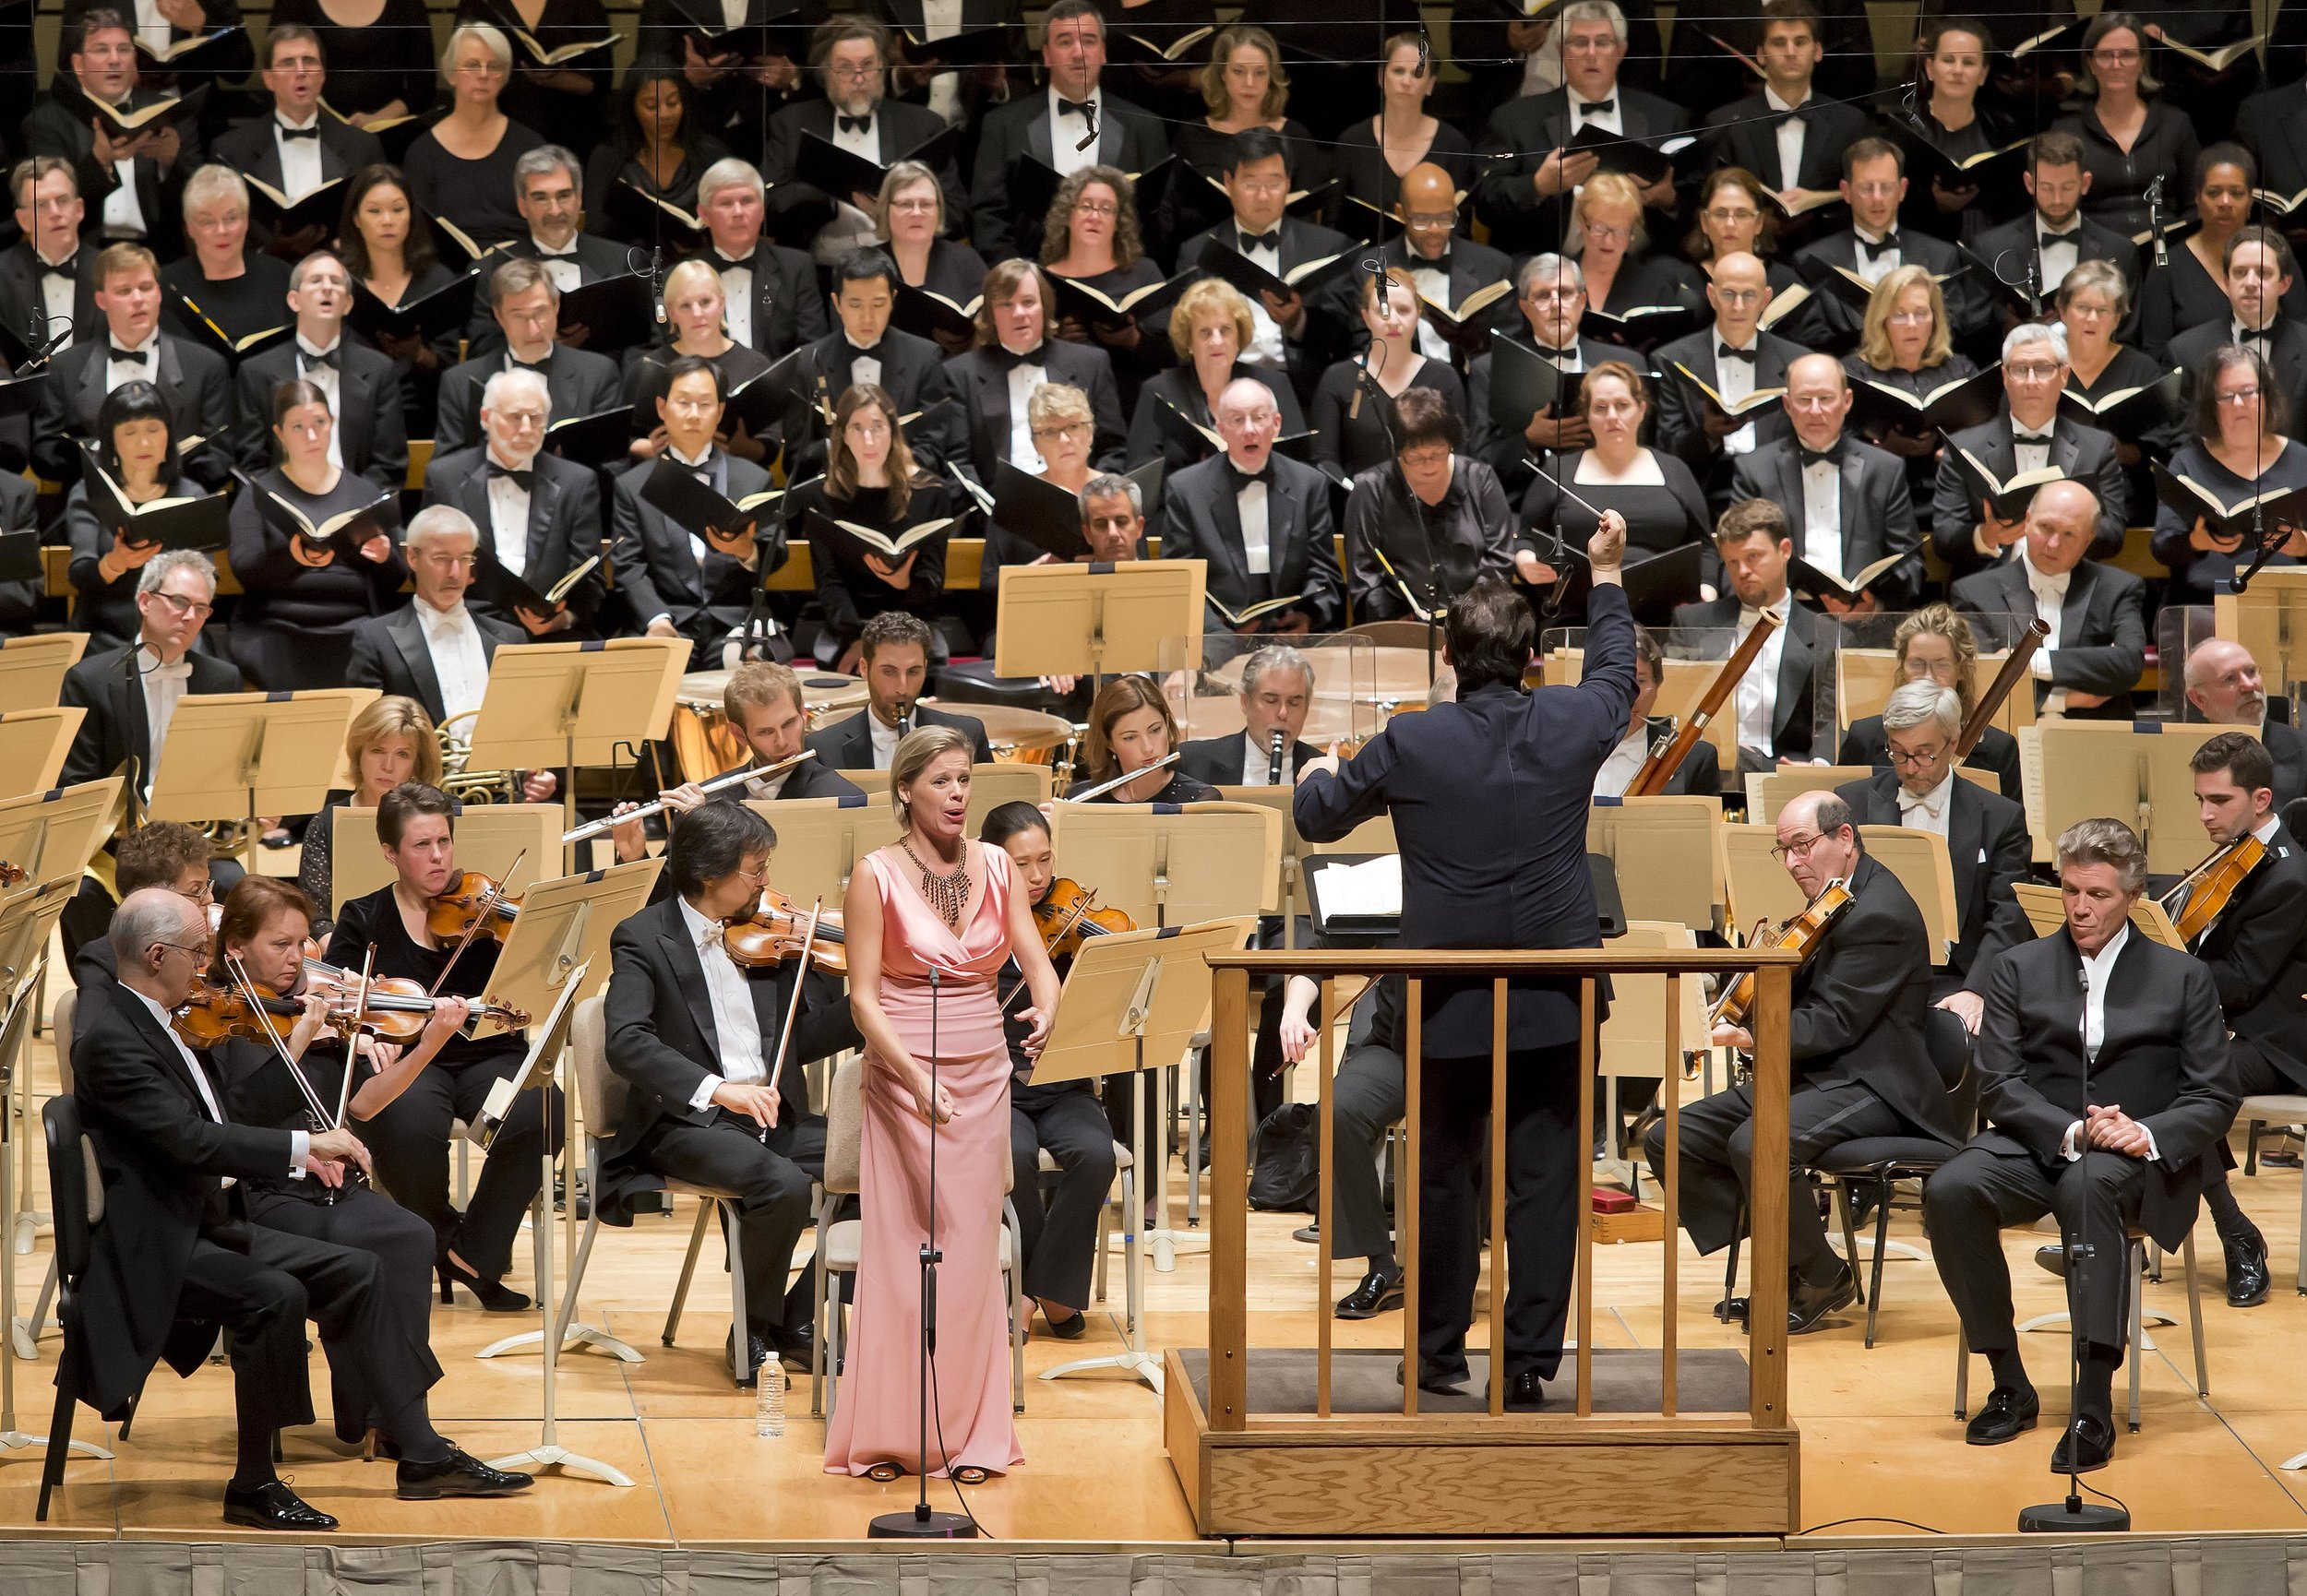 Soprano Camilla Tilling, with music director Andris Nelsons and the Boston Symphony Orchestra, performing Brahms' Ein Deutsches Requiem. Winslow Townson photograph.